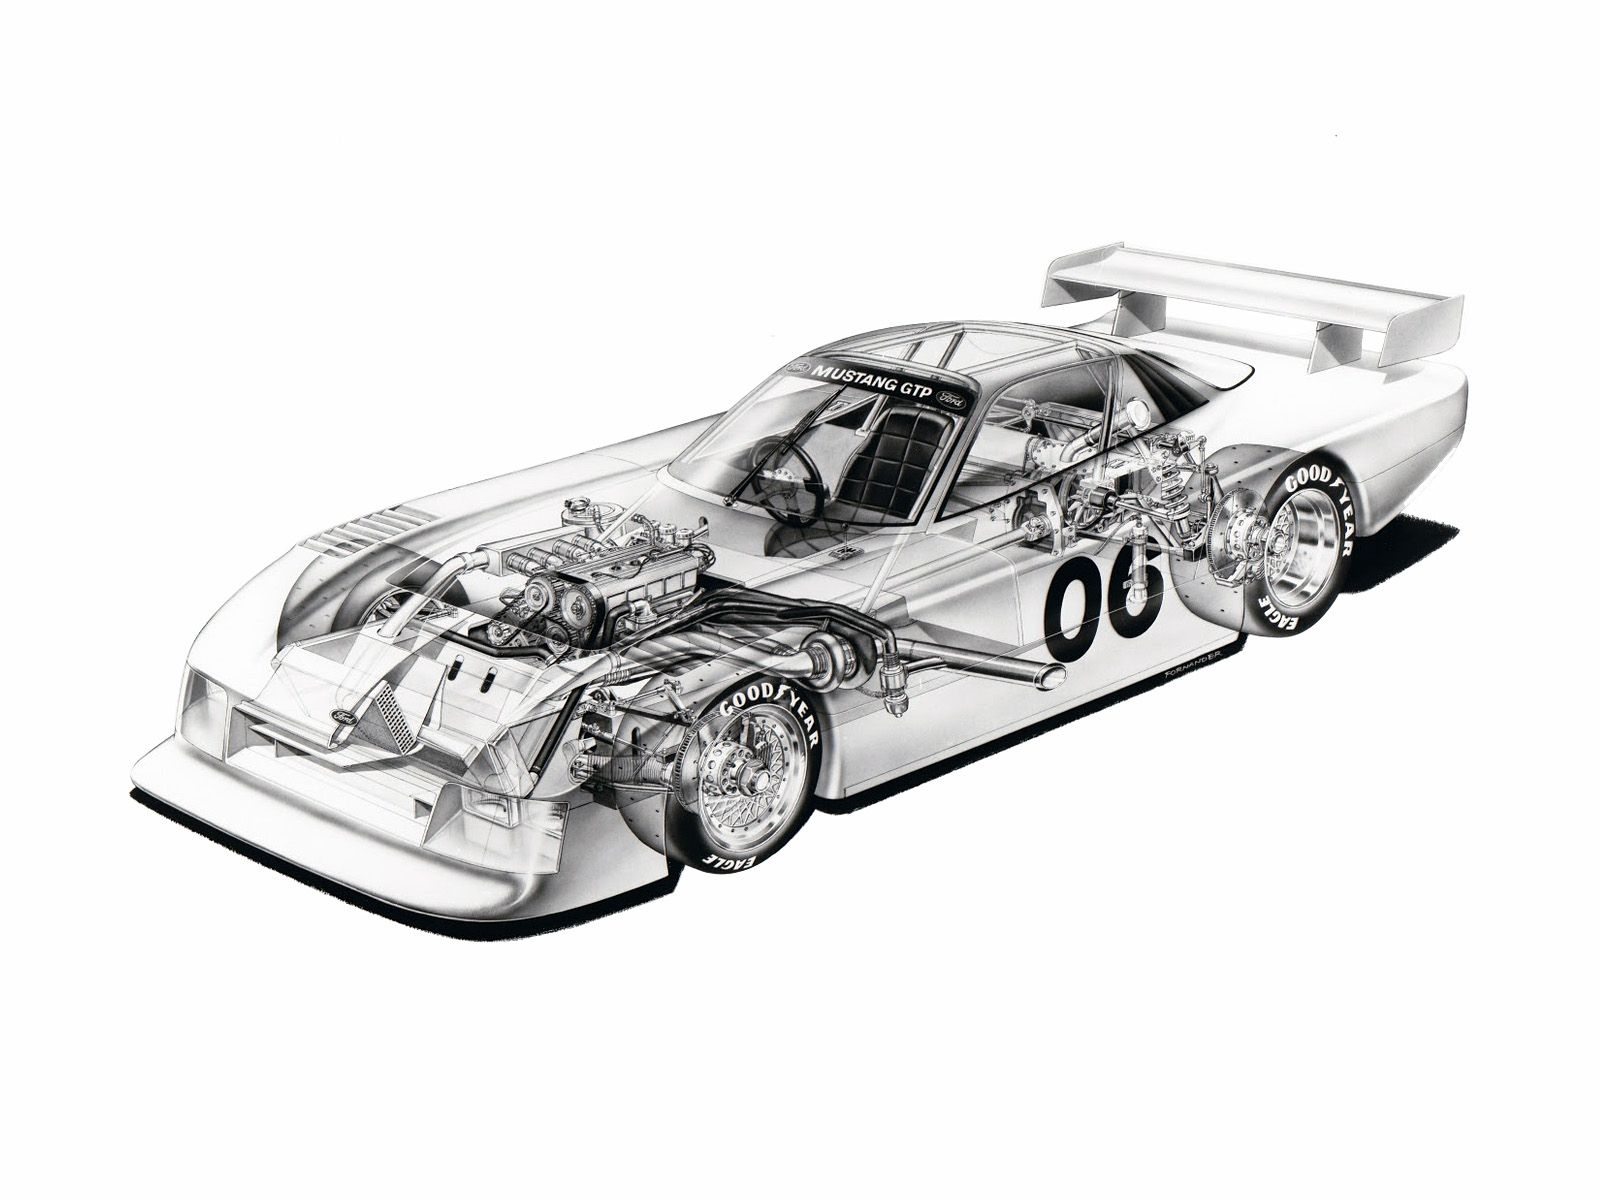 1983 Ford Mustang GTP - Illustrator unknown